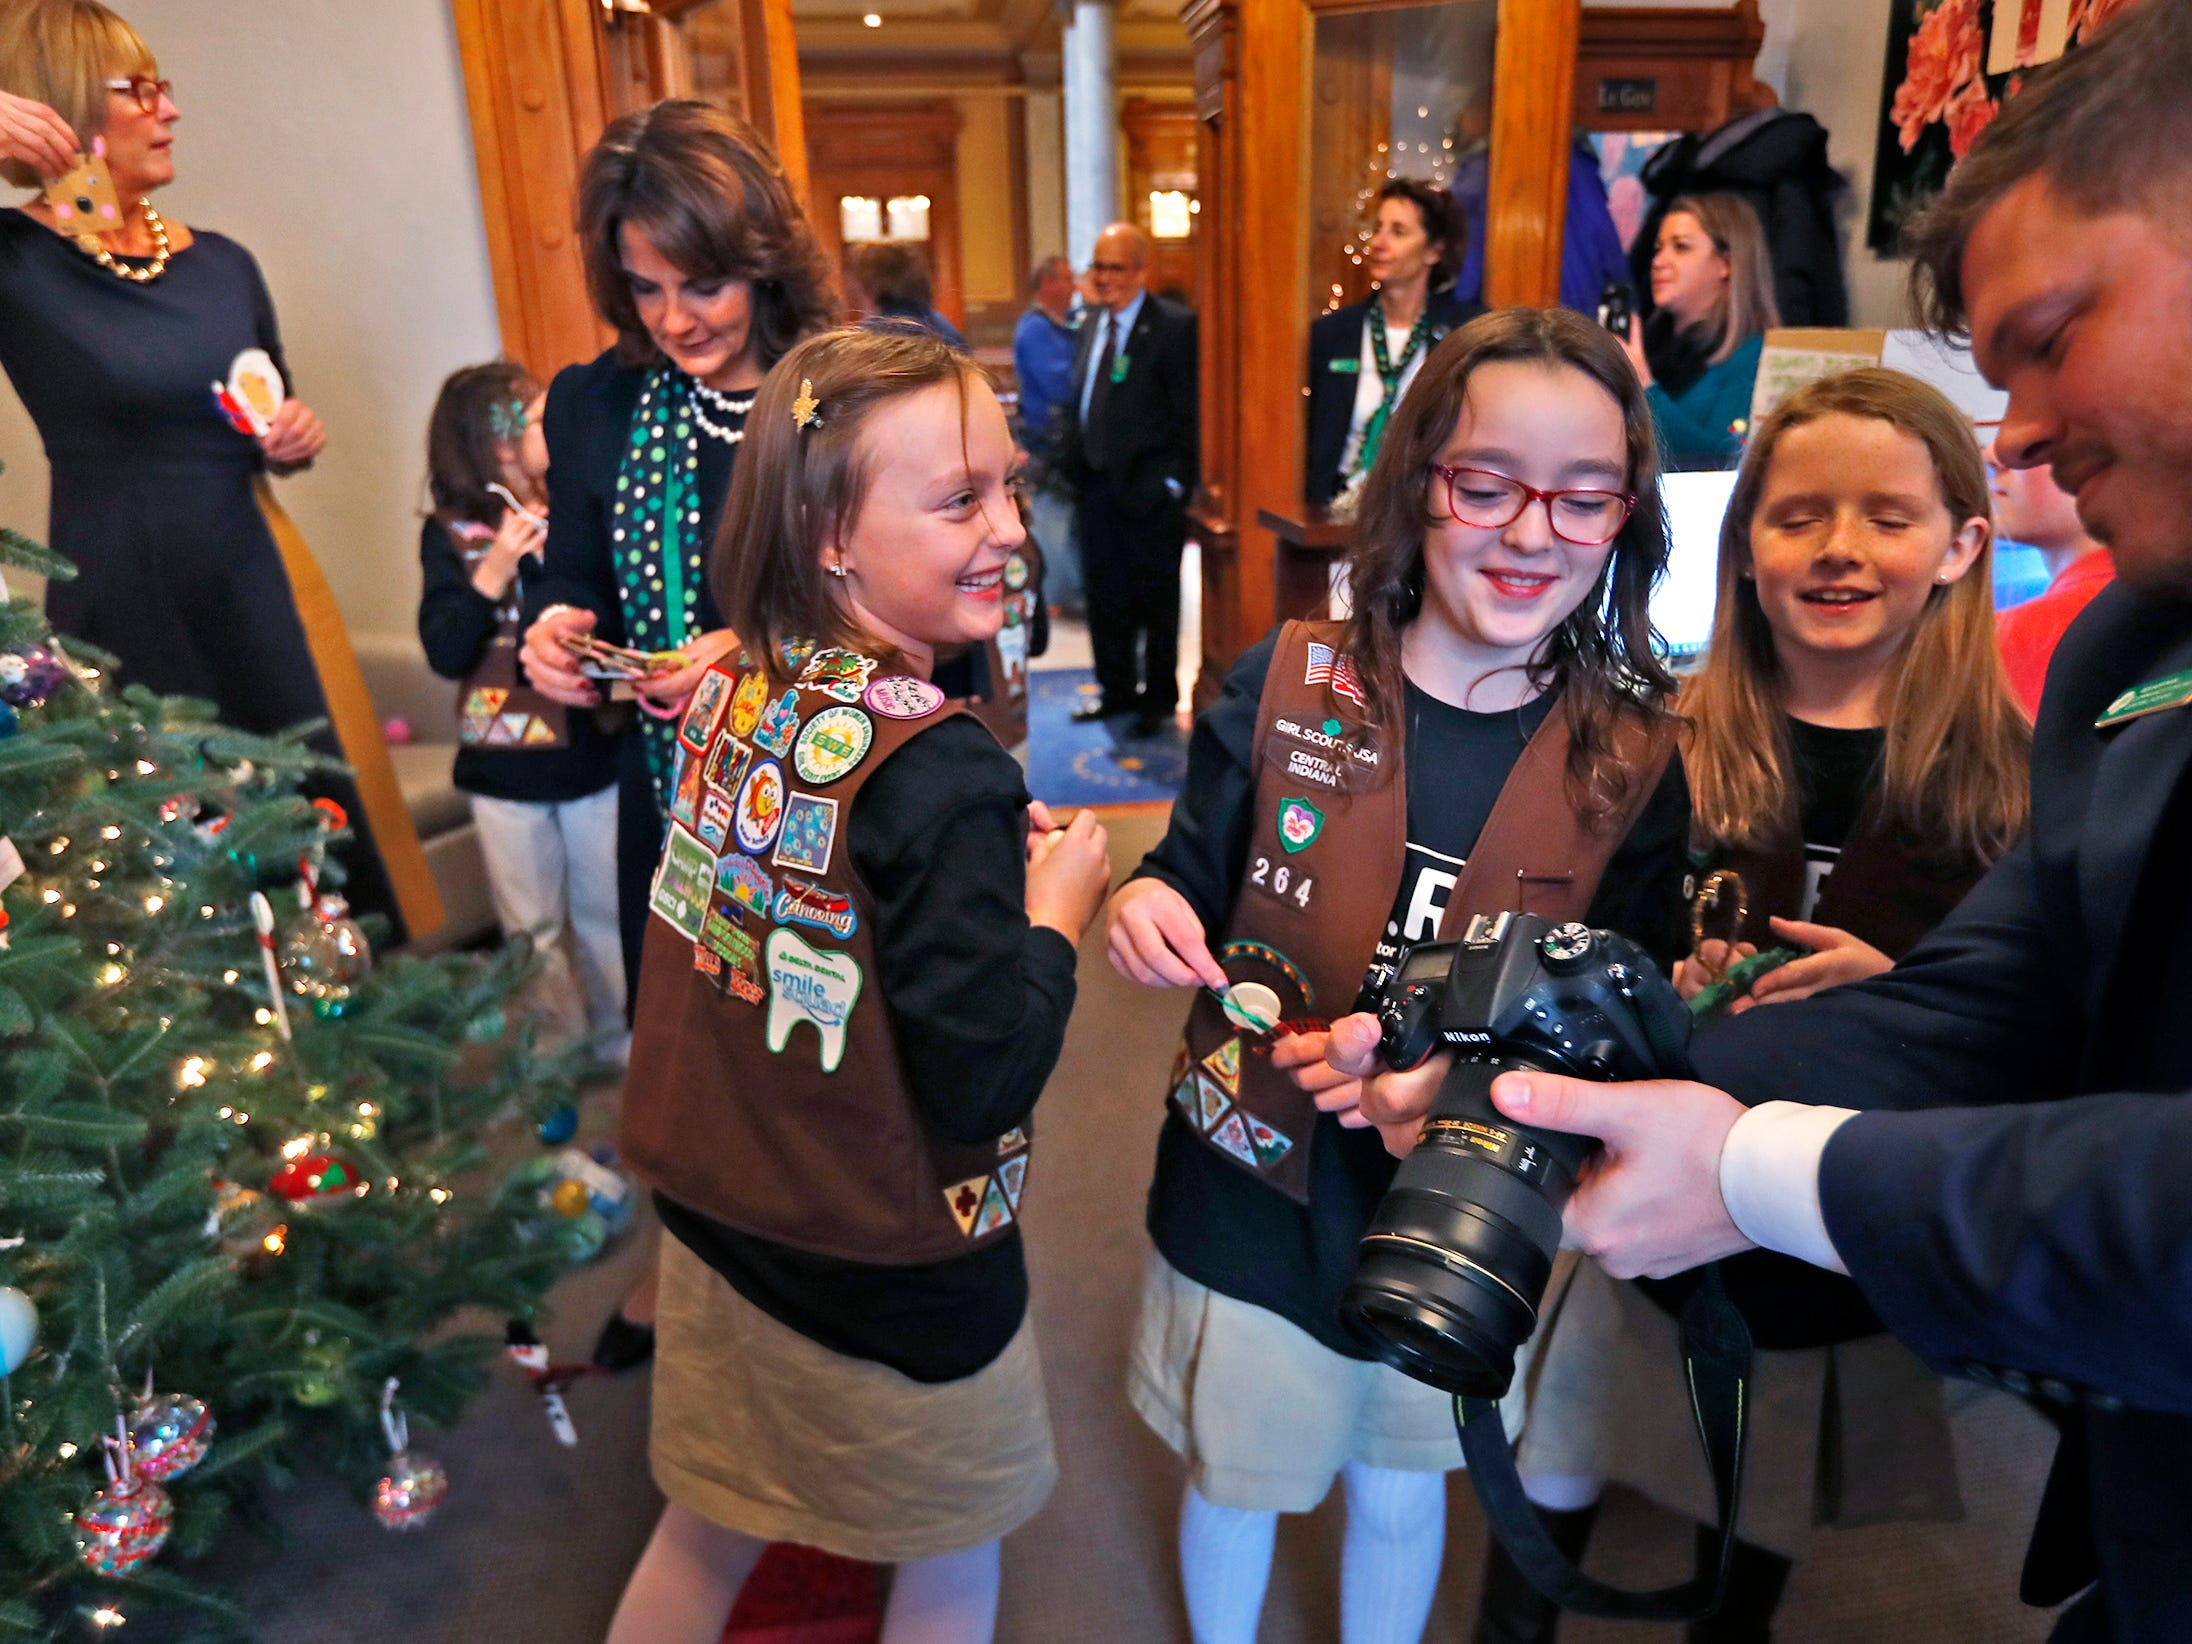 Brownies laugh as they see a photo of themselves as they join Lieutenant Governor Suzanne Crouch to decorate her Indiana Statehouse tree for the holidays, Wednesday, Dec. 5, 2018.  They used ornaments created by Girl Scouts from across Central Indiana for the tree.